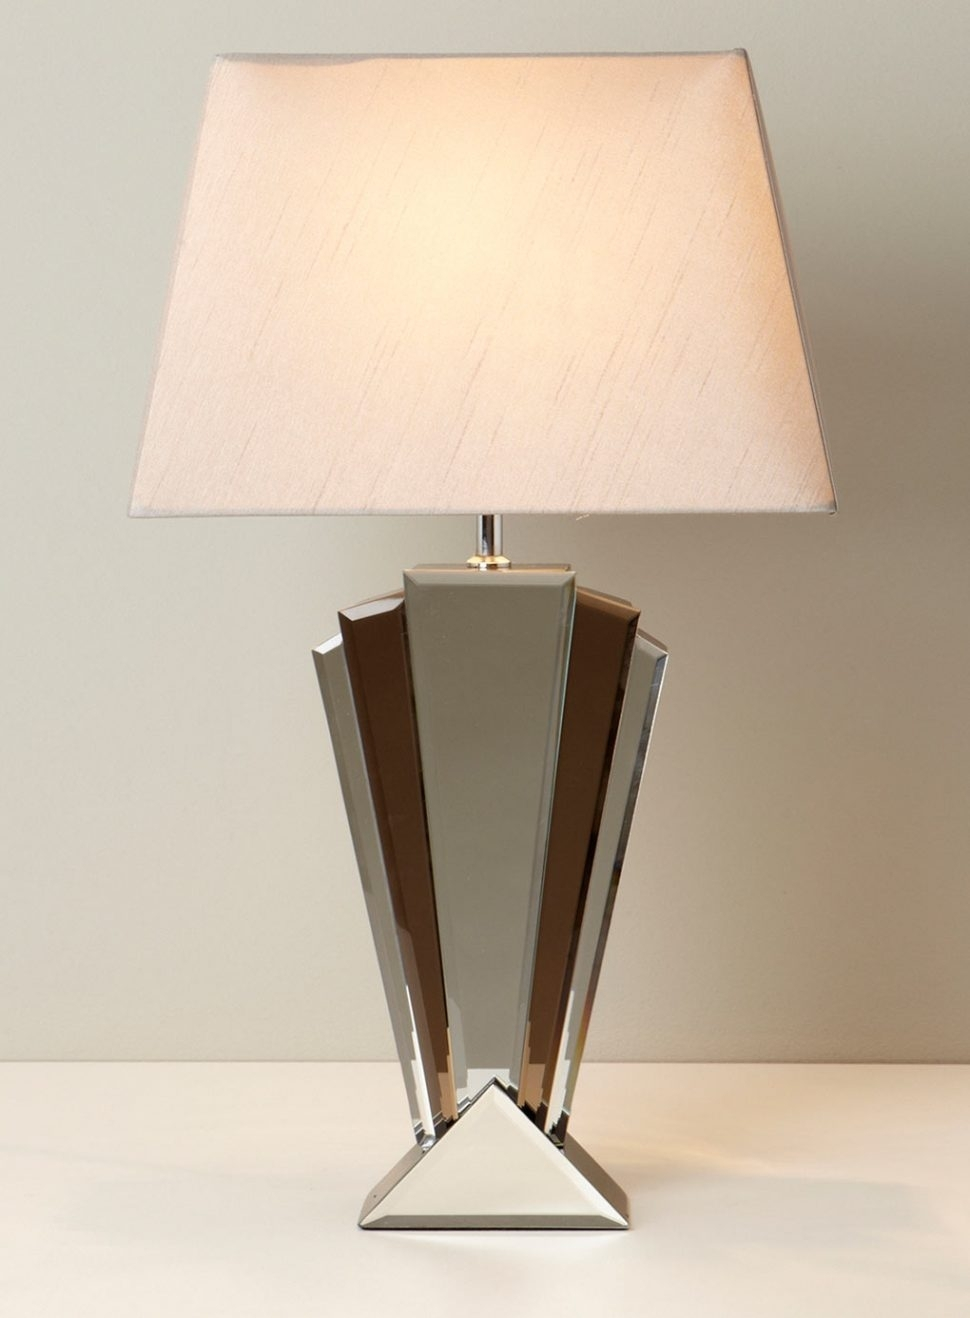 Popular Photo of Table Lamps For Living Room At Ebay